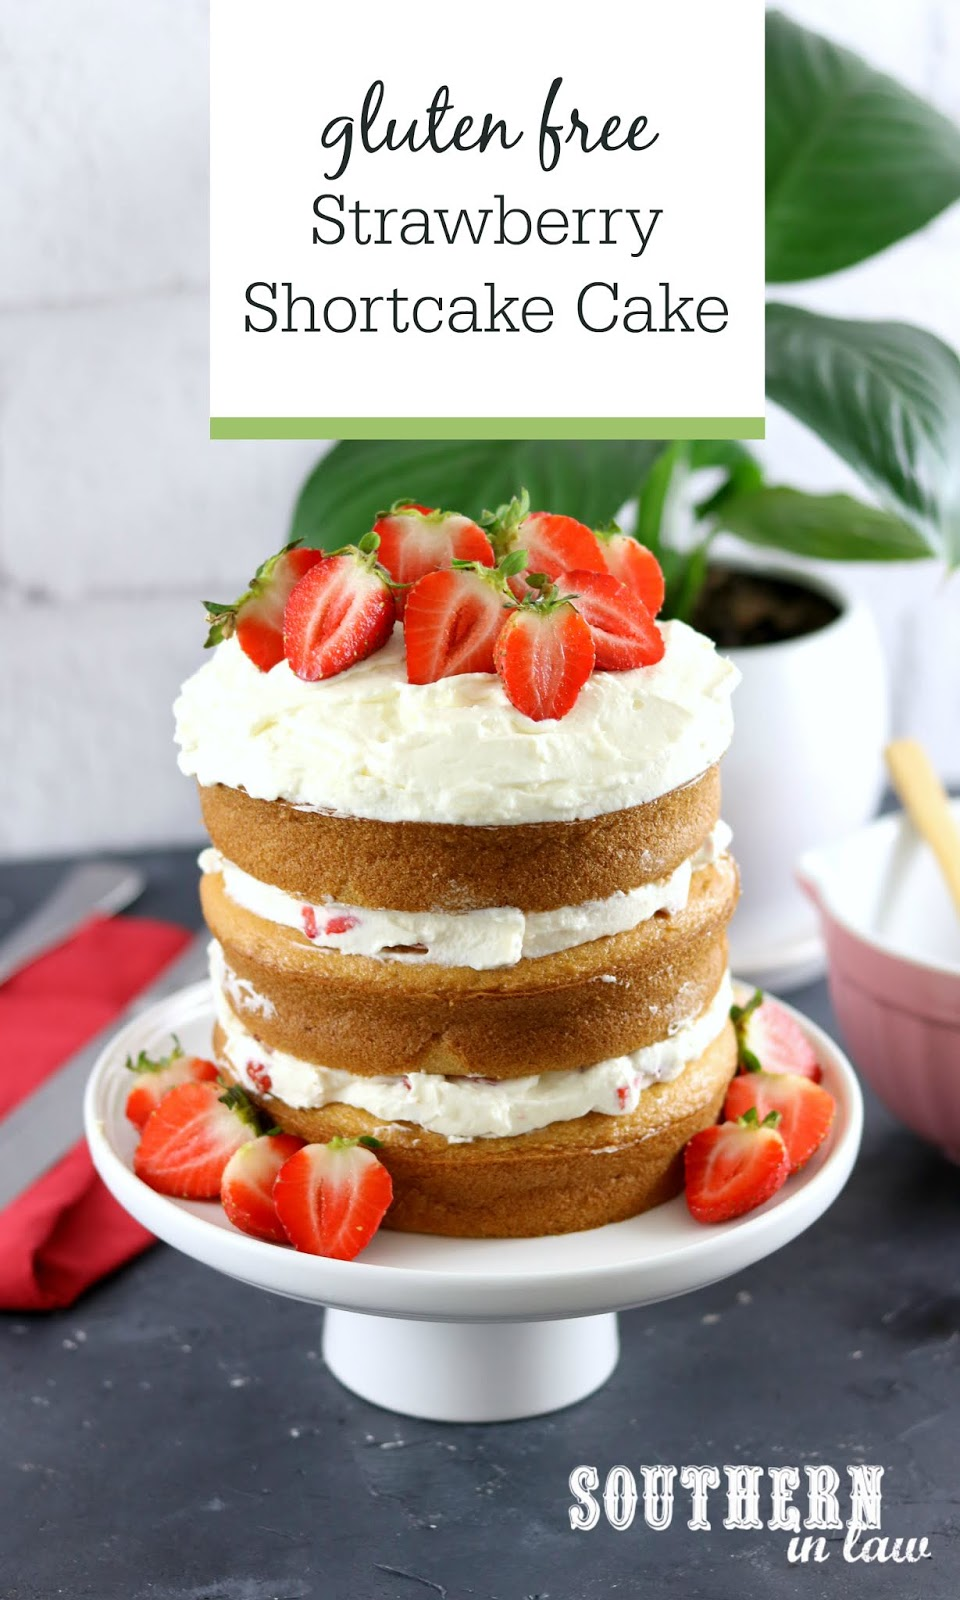 Easy Gluten Free Strawberry Shortcake Birthday Cake With Whipped Cream Frosting